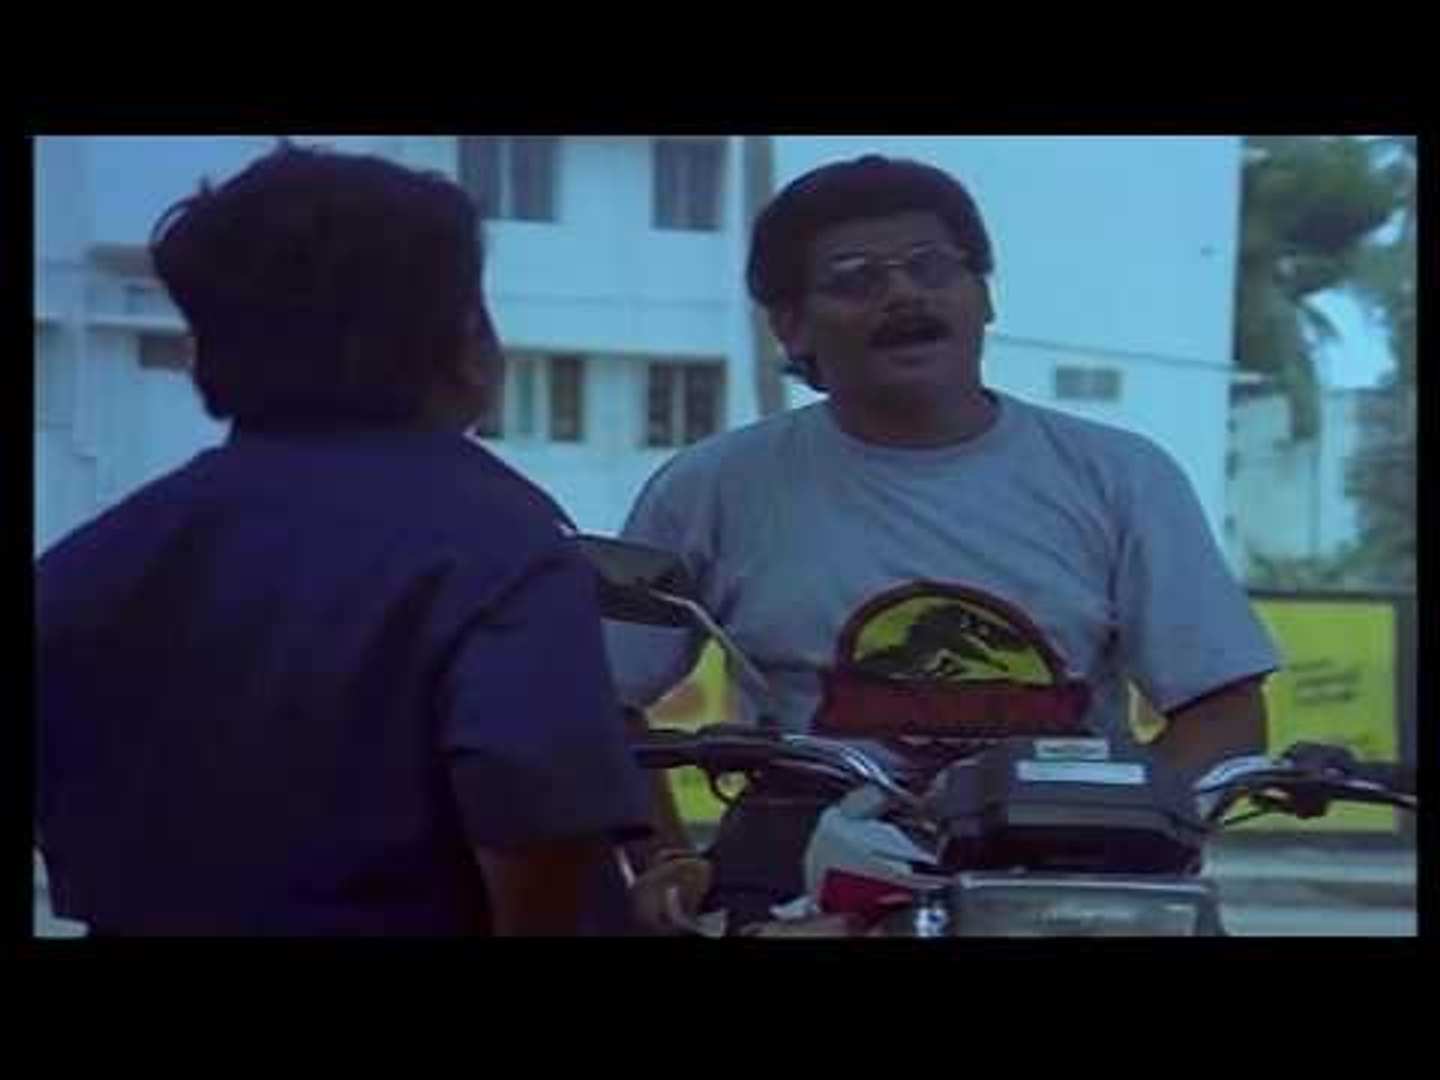 Tamil Movie Full Movie - Play Girls - Romantic Movie Scene 6